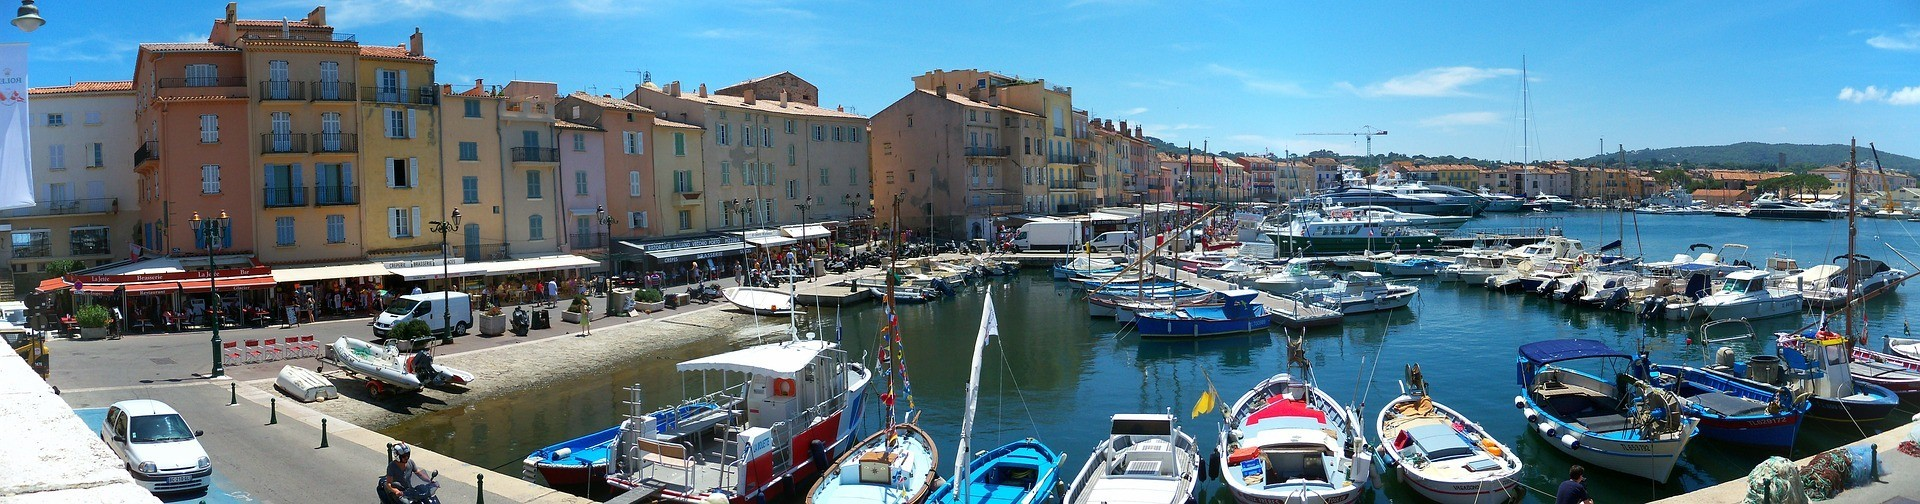 Port de Saint Tropez